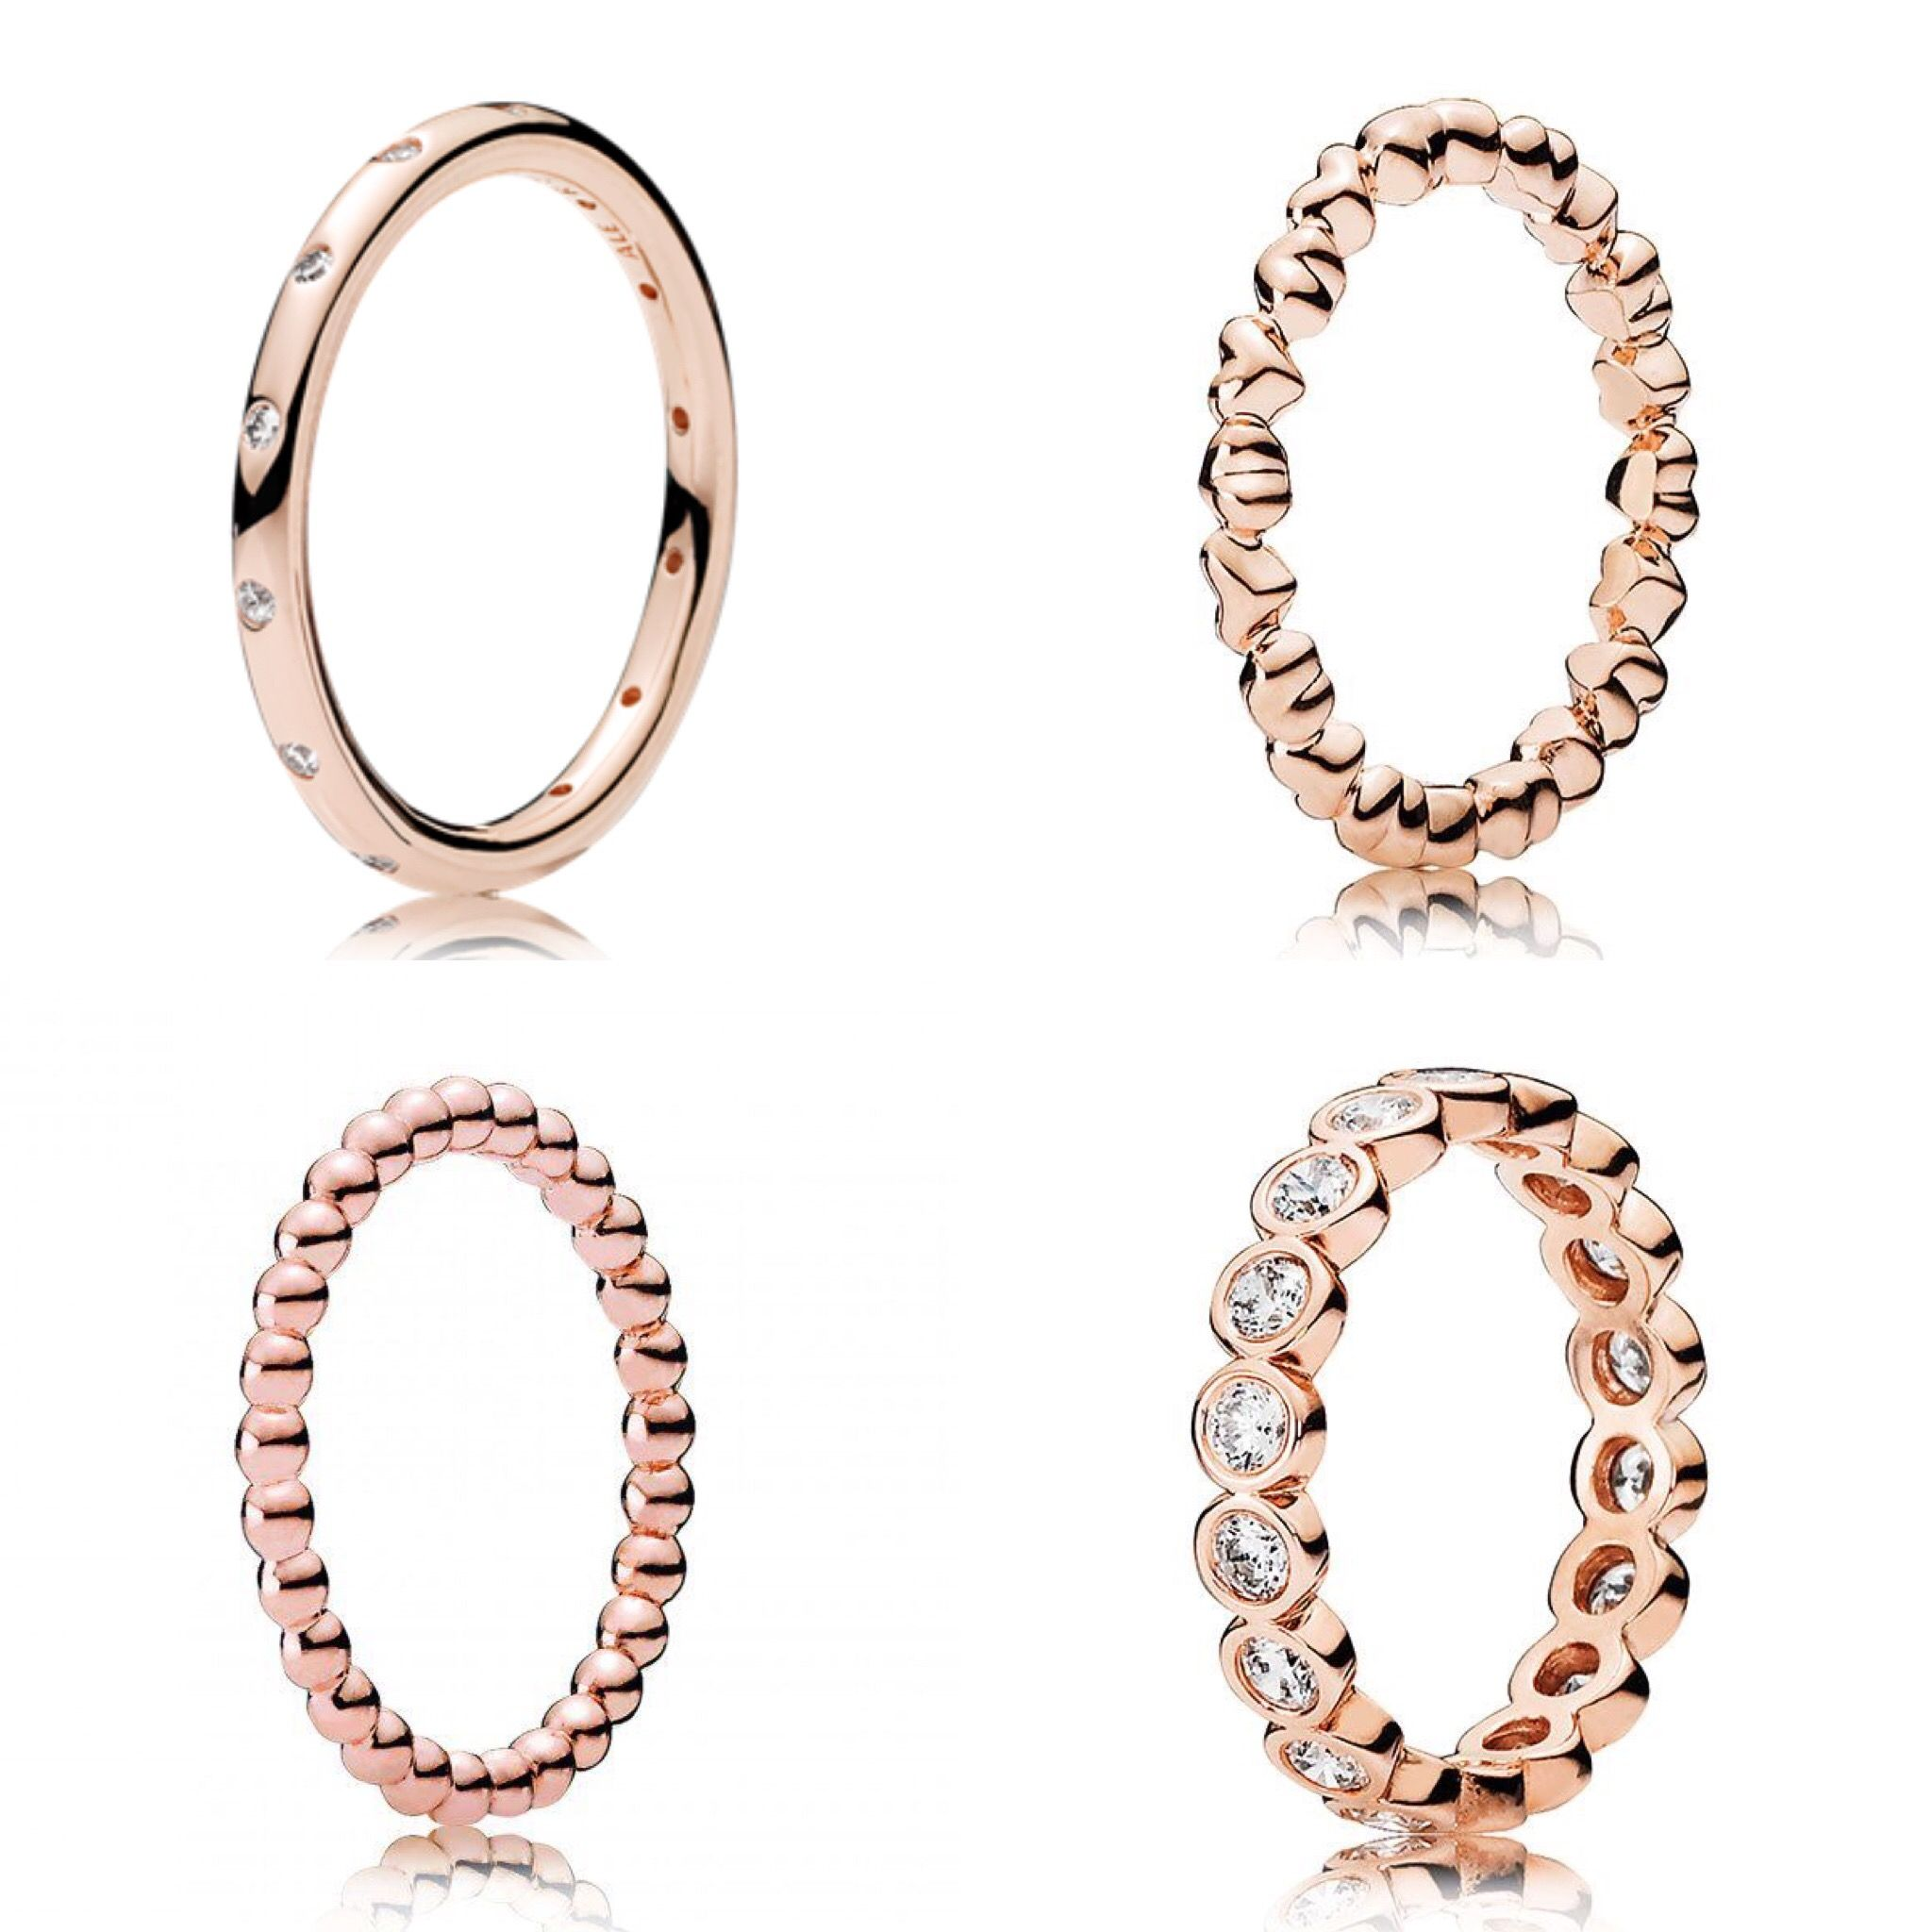 4b07f6daefa06 Pandora Rose Gold Rings | Things.I.Like ❤️ in 2019 | Pandora rose ...